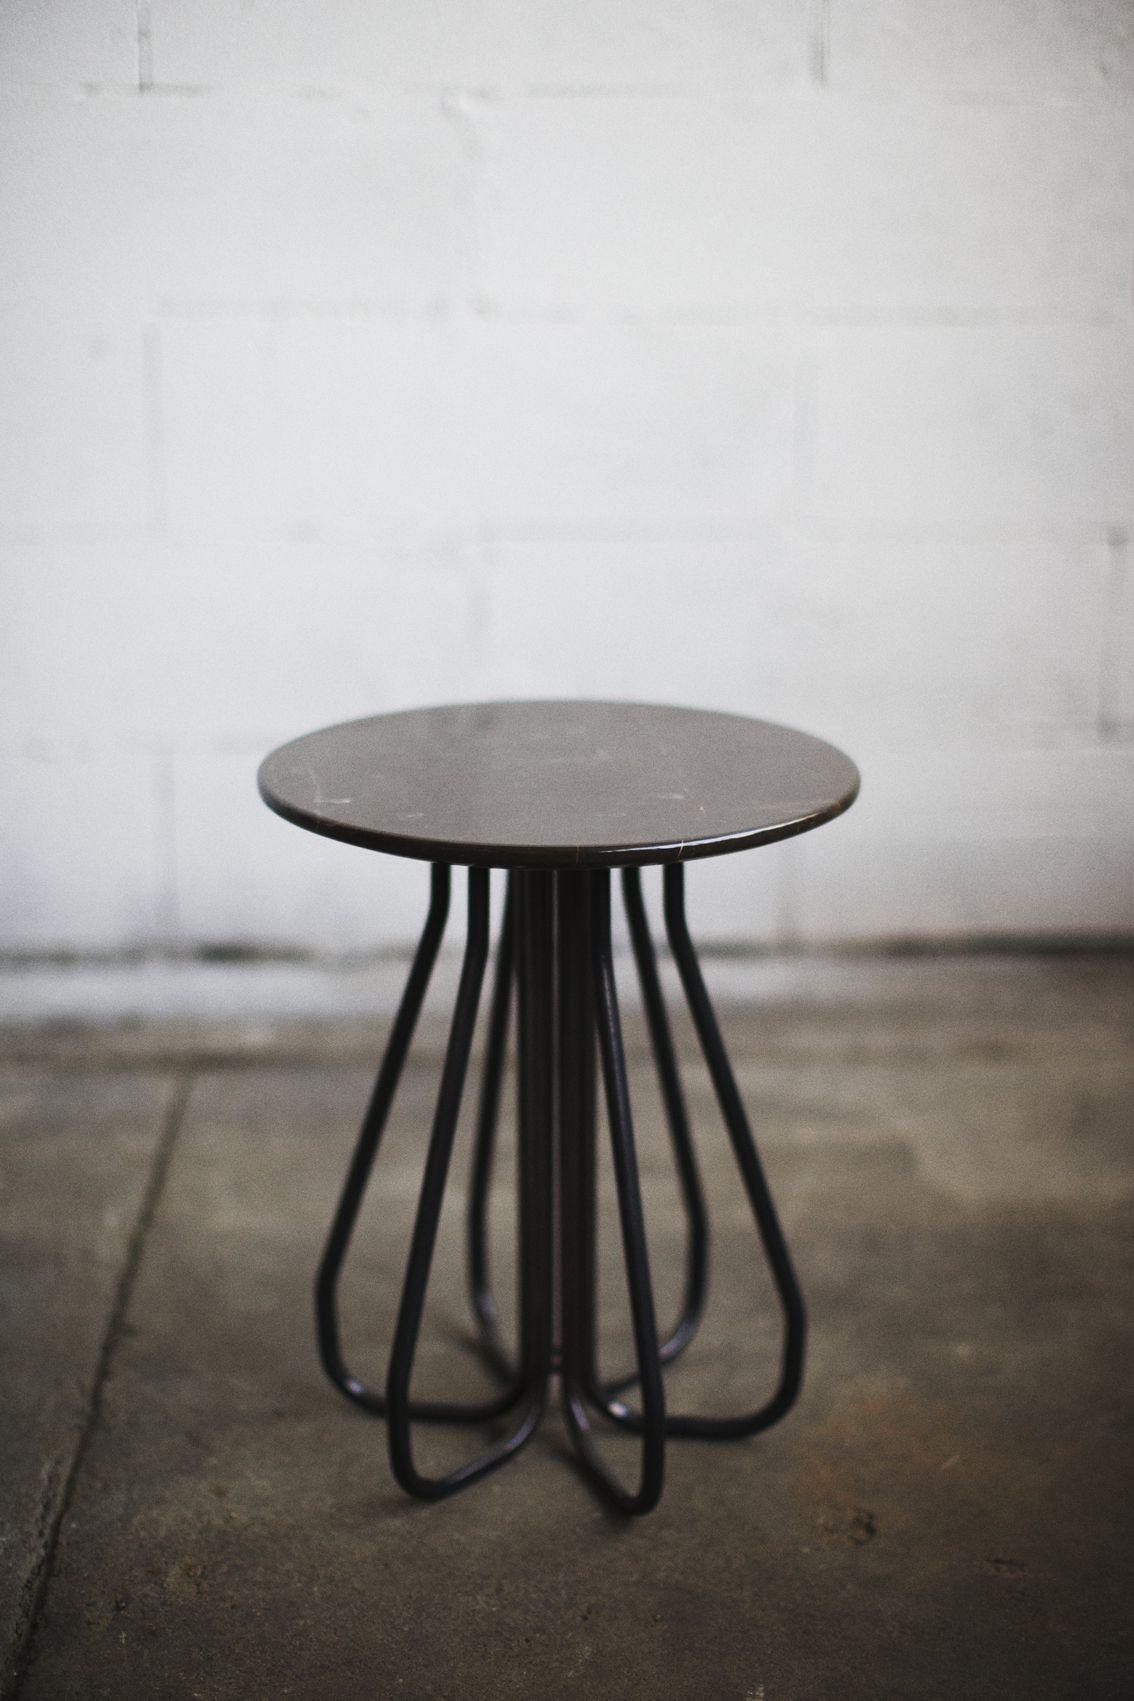 Gallery Of Sine Table By Barbera Local Australian Furniture, Lighting & Object Design Melbourne, Vic Image 1